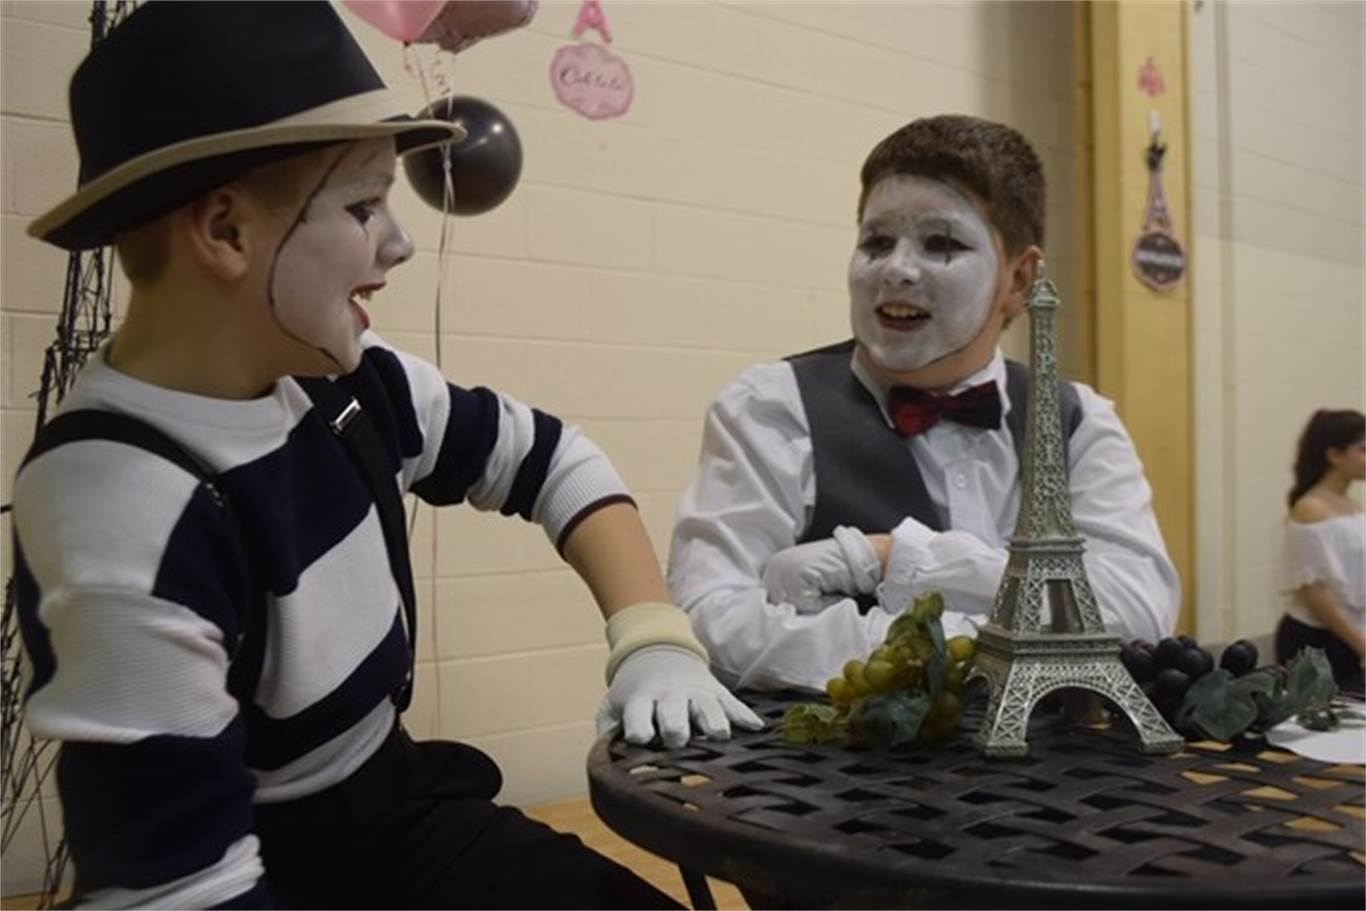 Grade 7 students Mitchell Harrington and Nicholas Gates, left to right, chat in a bistro-like setting at St. Luke Catholic Elementary School's A day in Paris event on May 8. Photo by Laura Lennie, Stoney Creek News